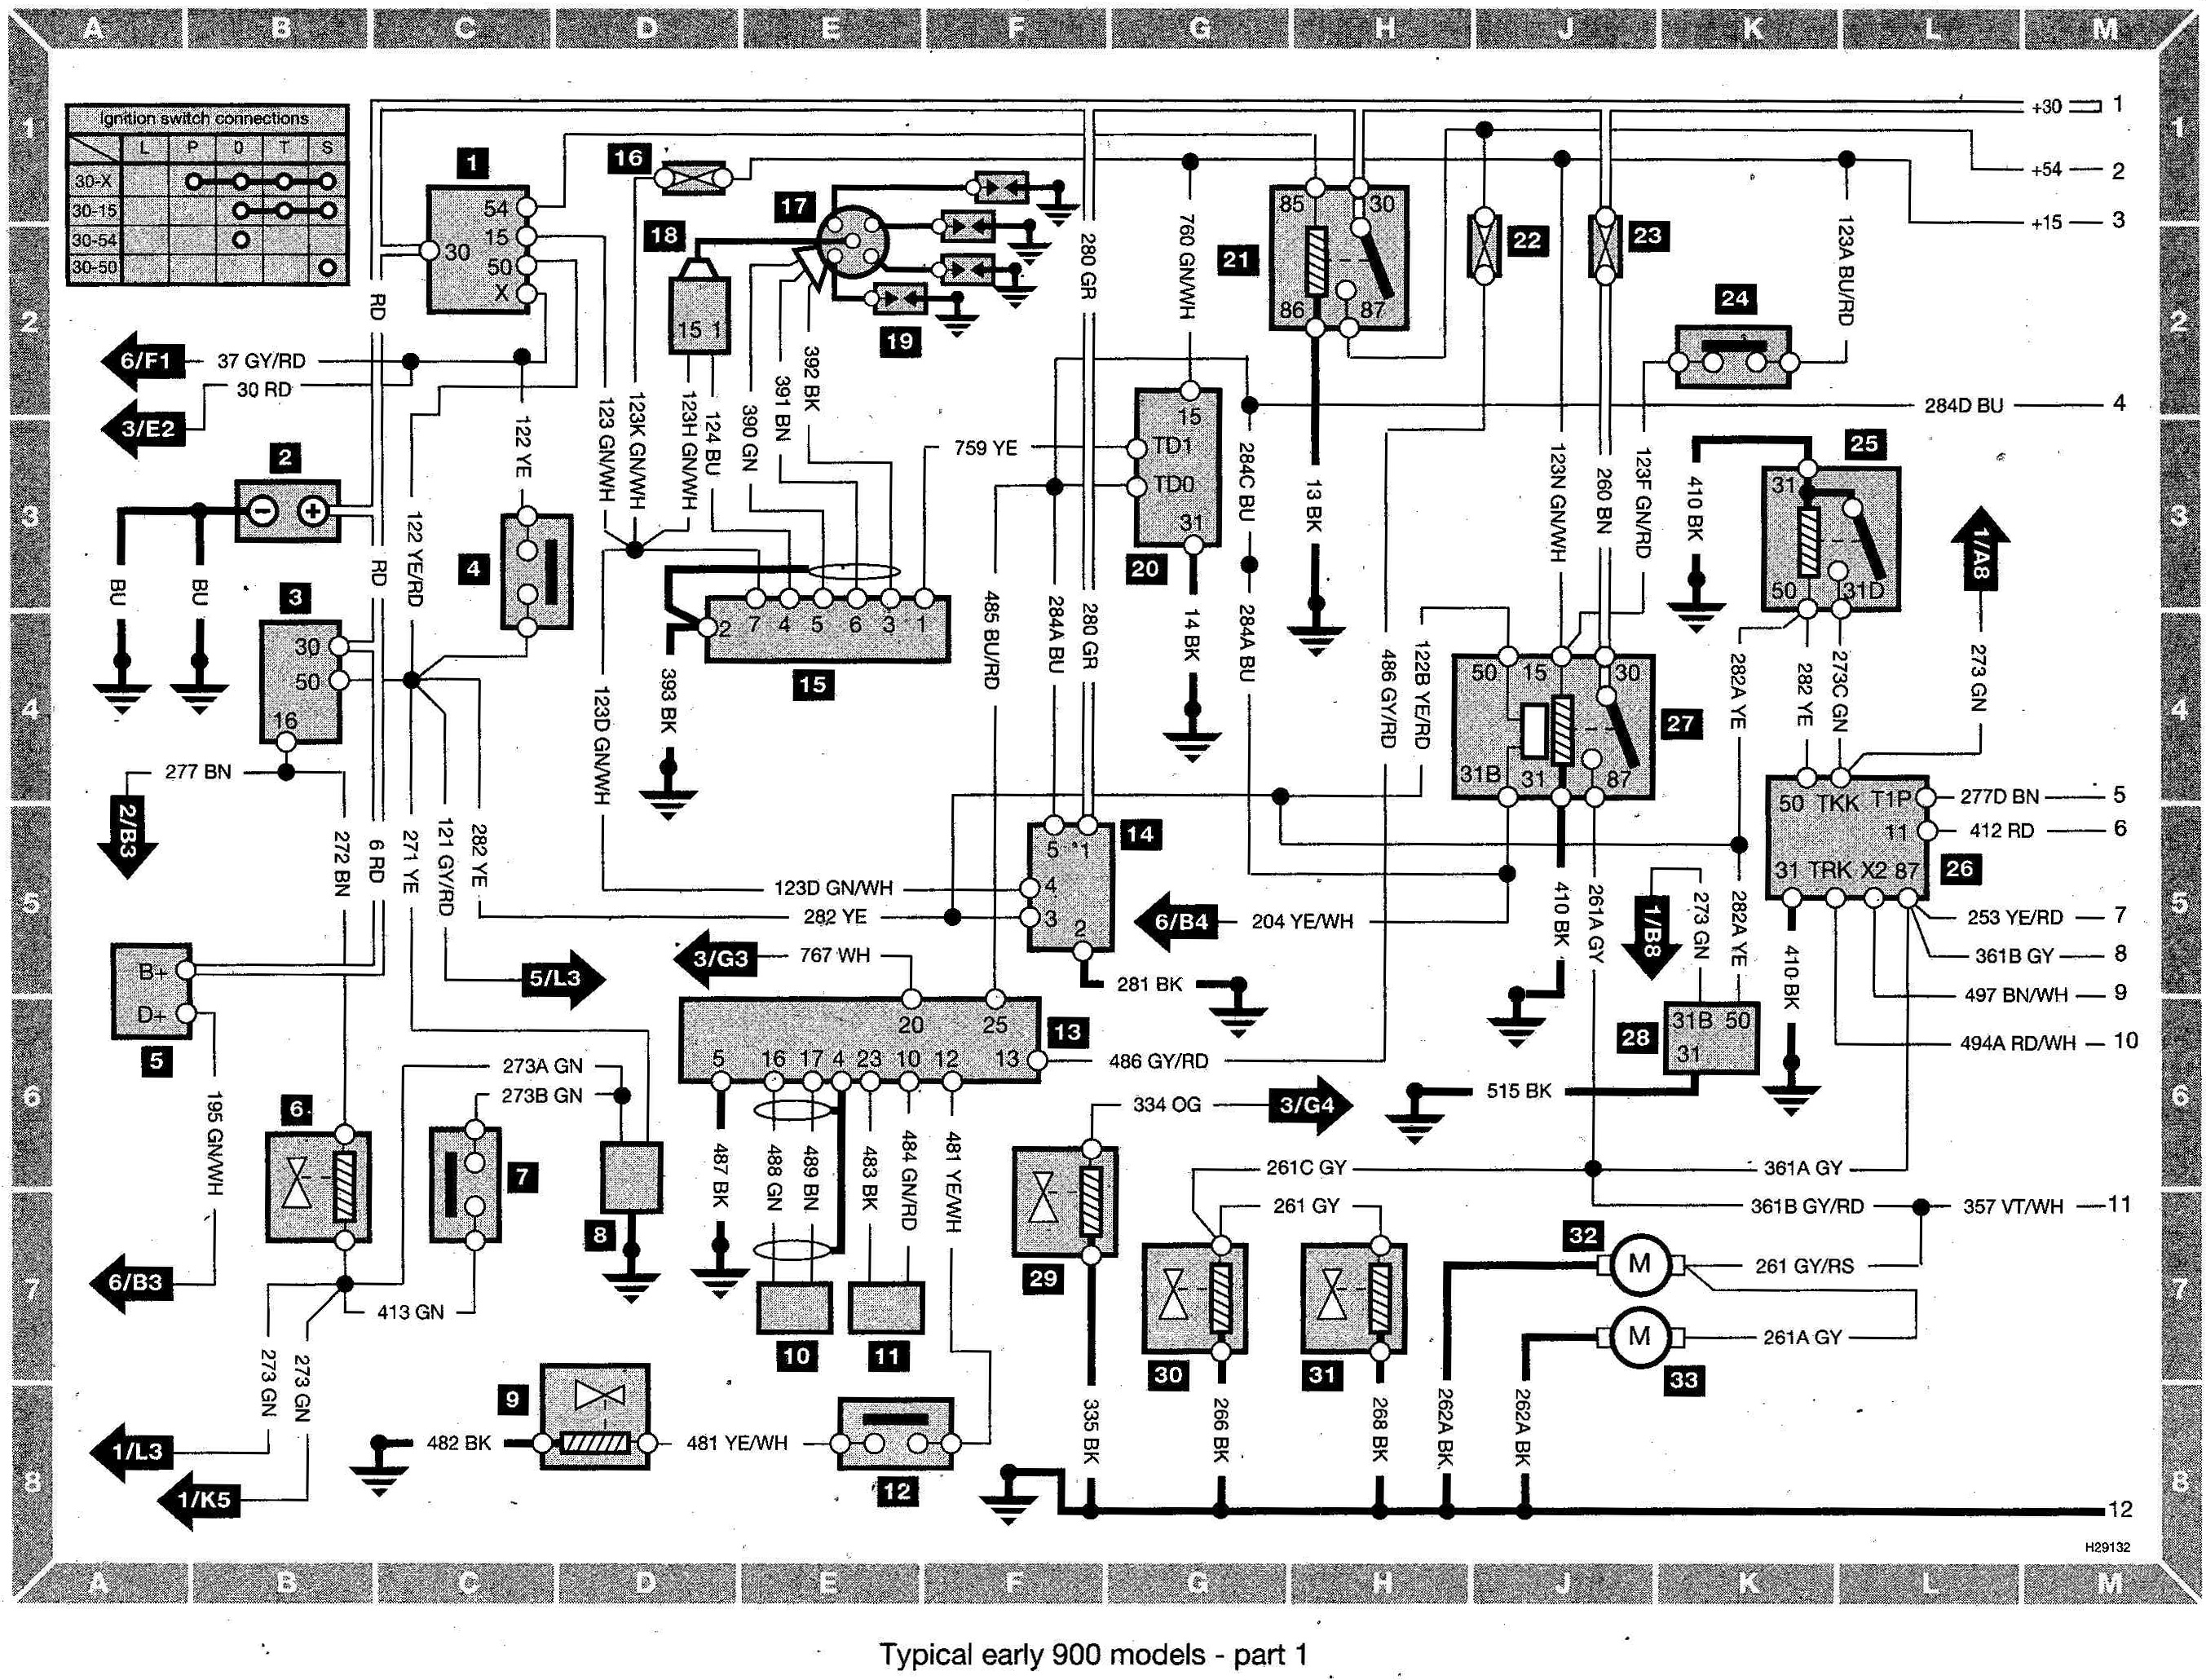 Superb 2003 Saab Engine Wiring Wiring Diagram Schematics Wiring 101 Photwellnesstrialsorg